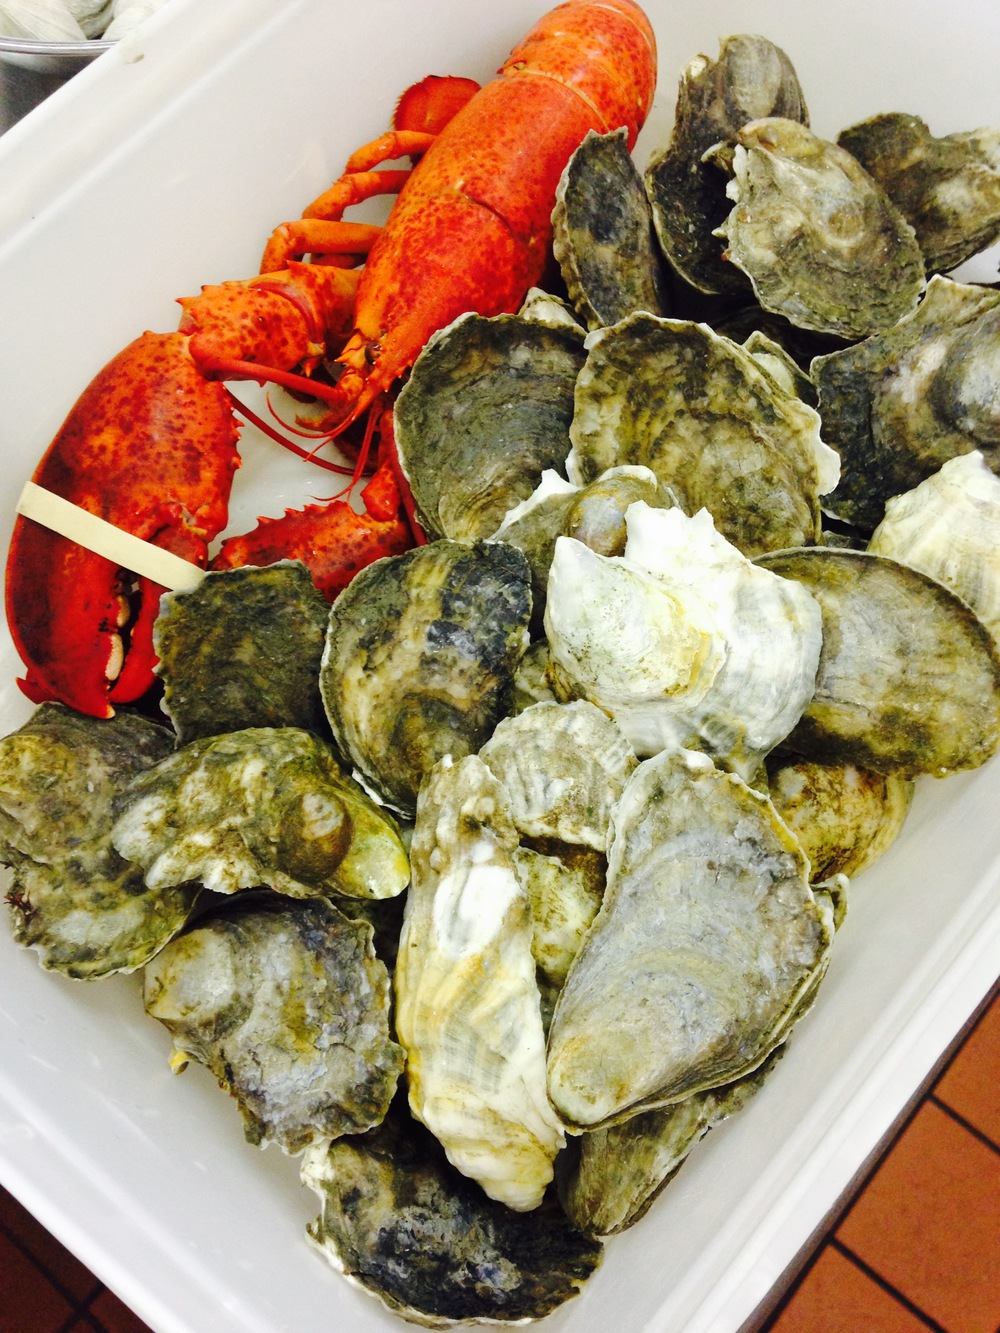 The oysters were from Island Creek Oyster Farm. No surprise there!